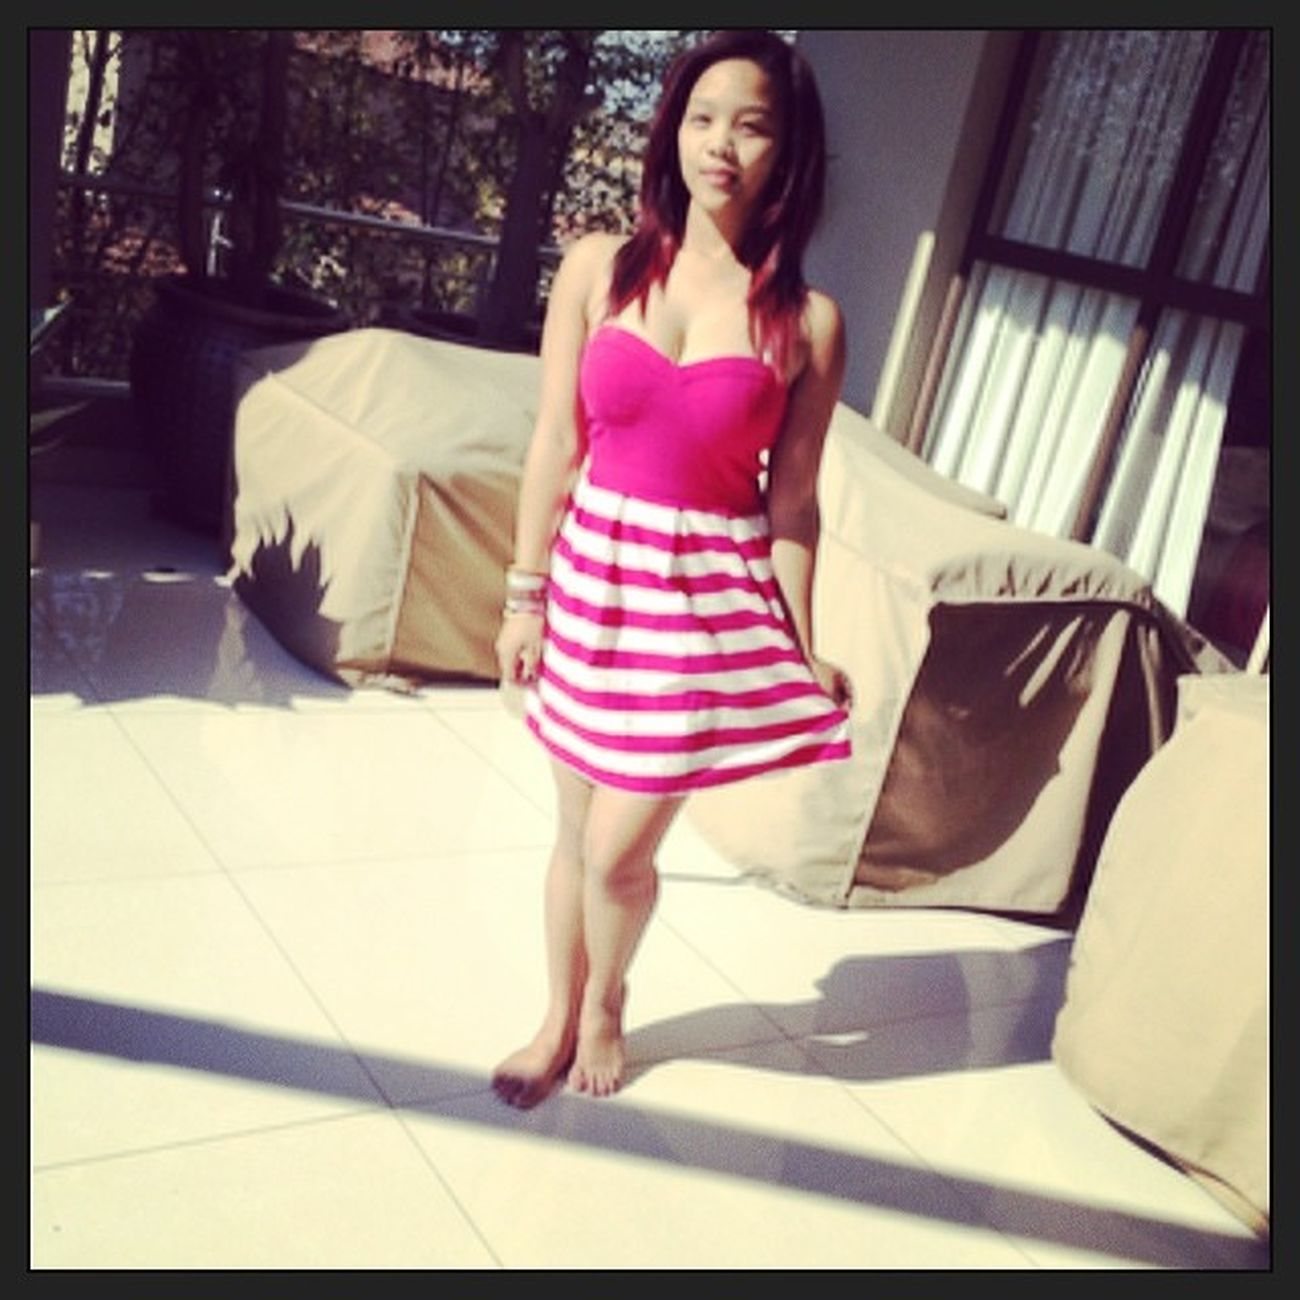 Mee Sundaydress Cutiecutie LOL home outside pink girly mwa